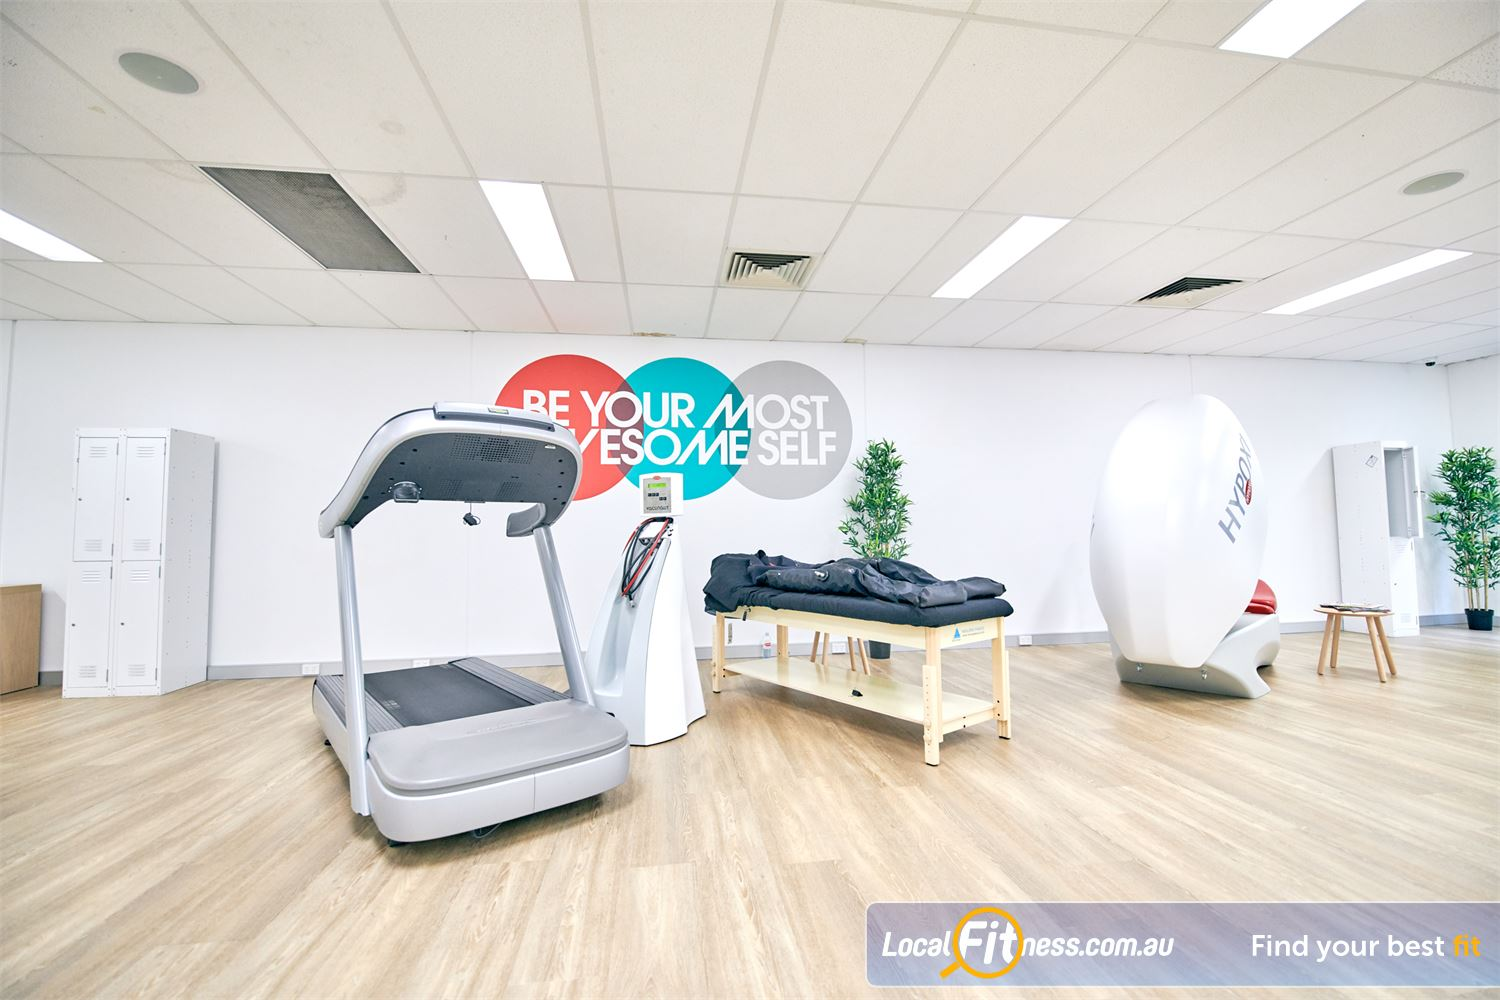 HYPOXI Weight Loss Balgowlah Welcome to the HYPOXI Balgowlah weight-loss studio.